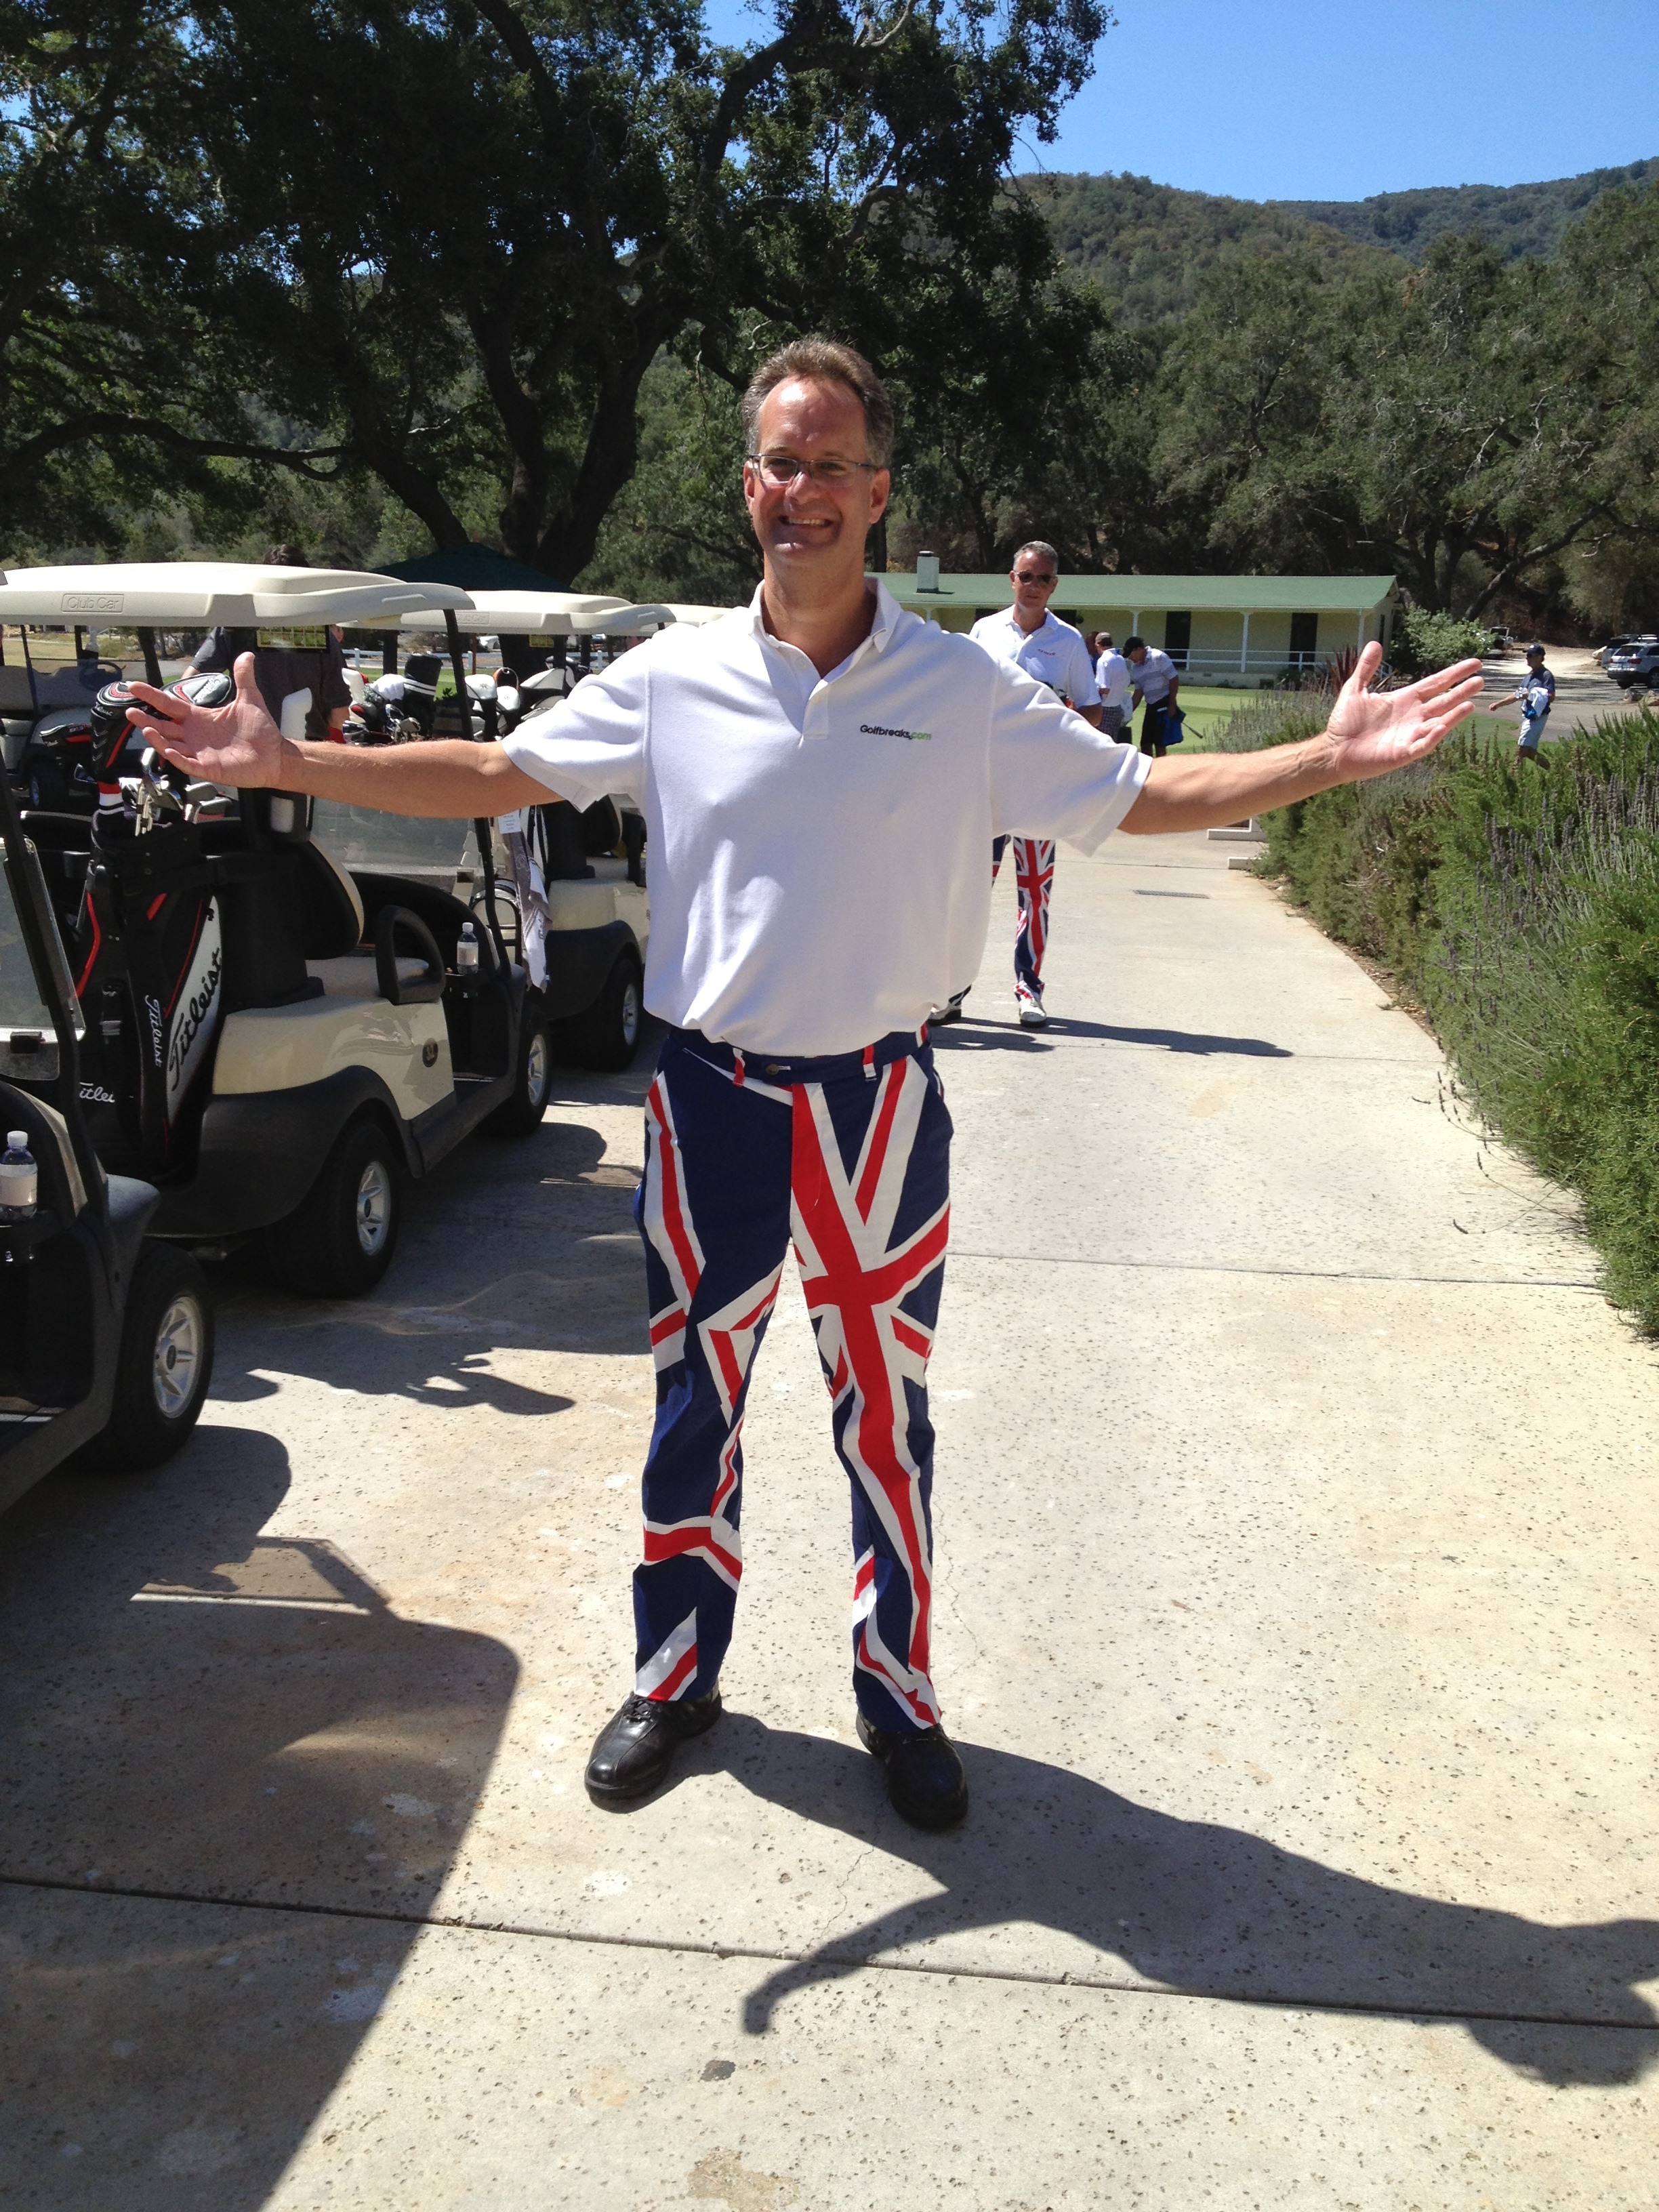 Man standing with arms stretched wide near golf carts